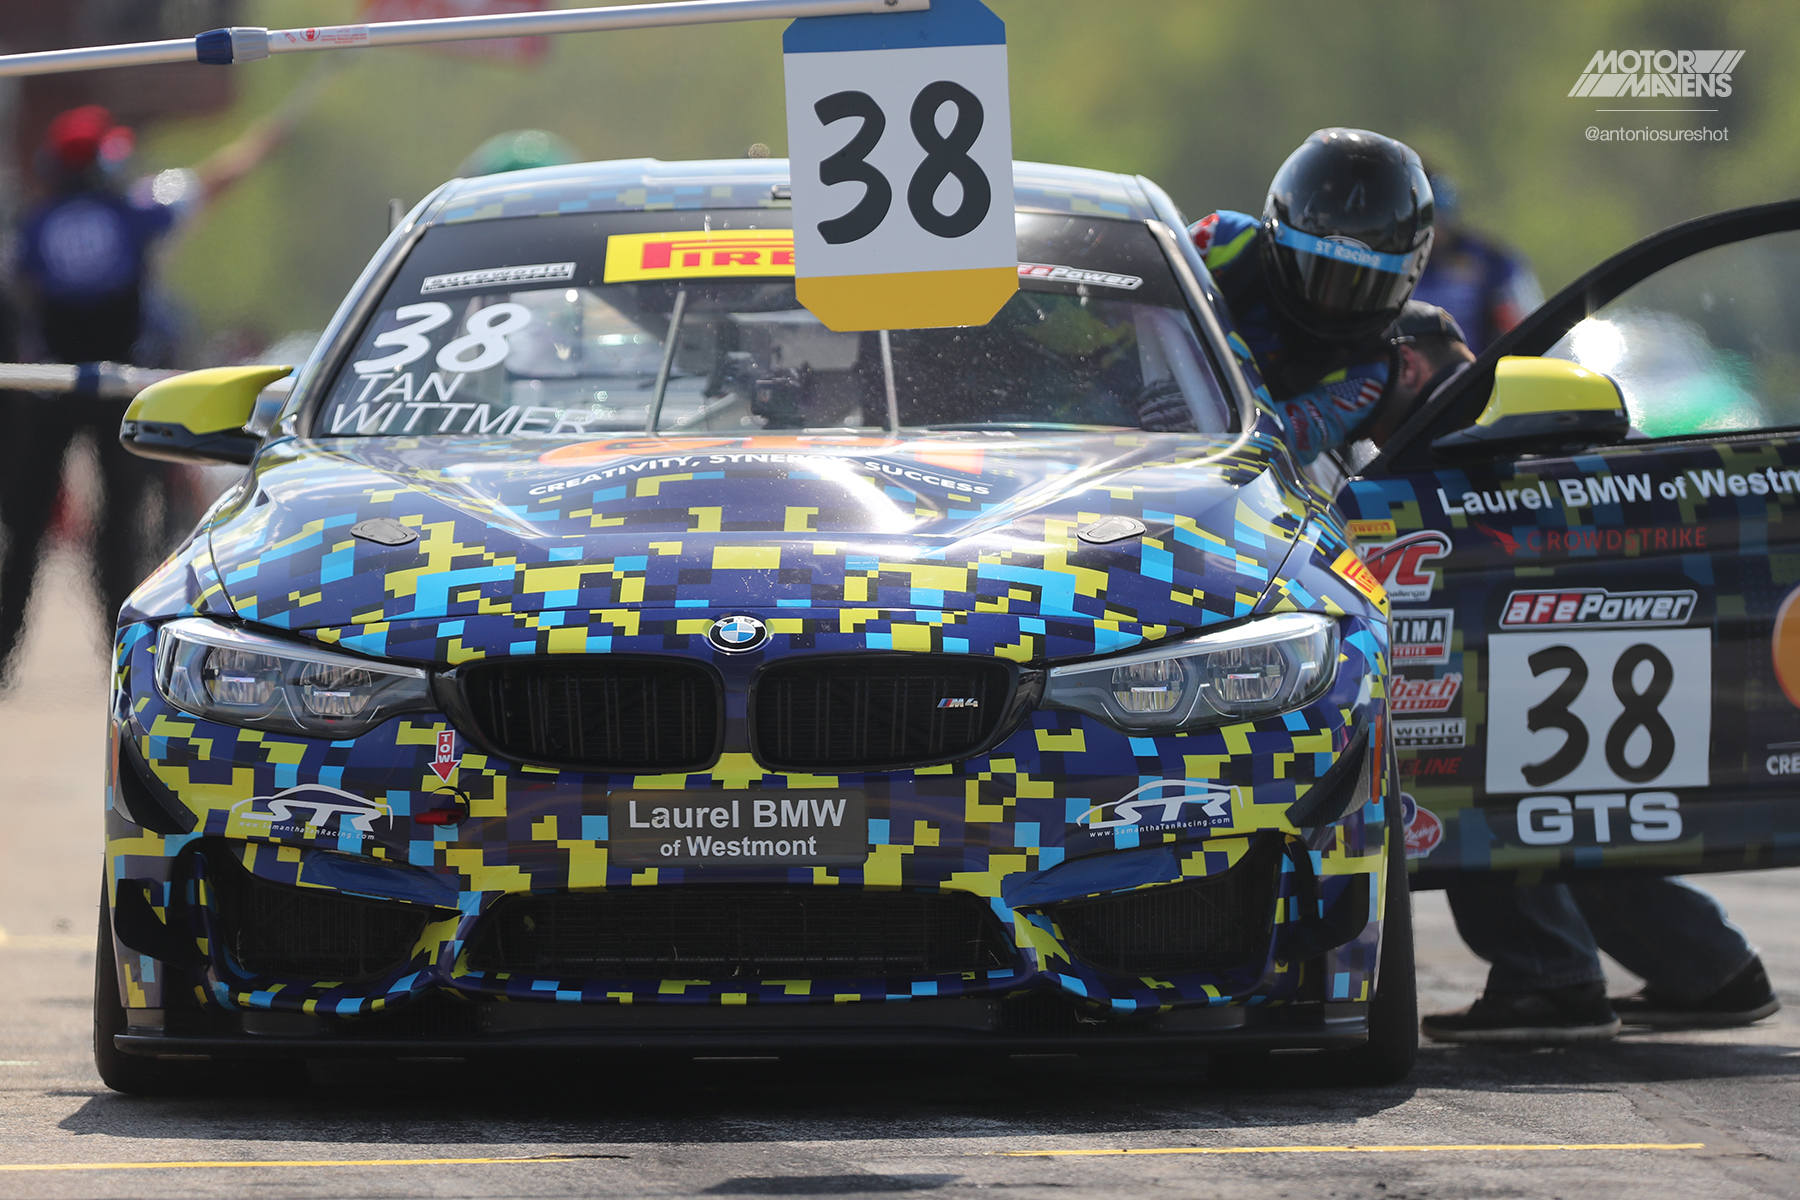 BMW M4 GT4, Pirelli World Challenge, Virginia International Raceway, VIR, PWC, Samantha Tan